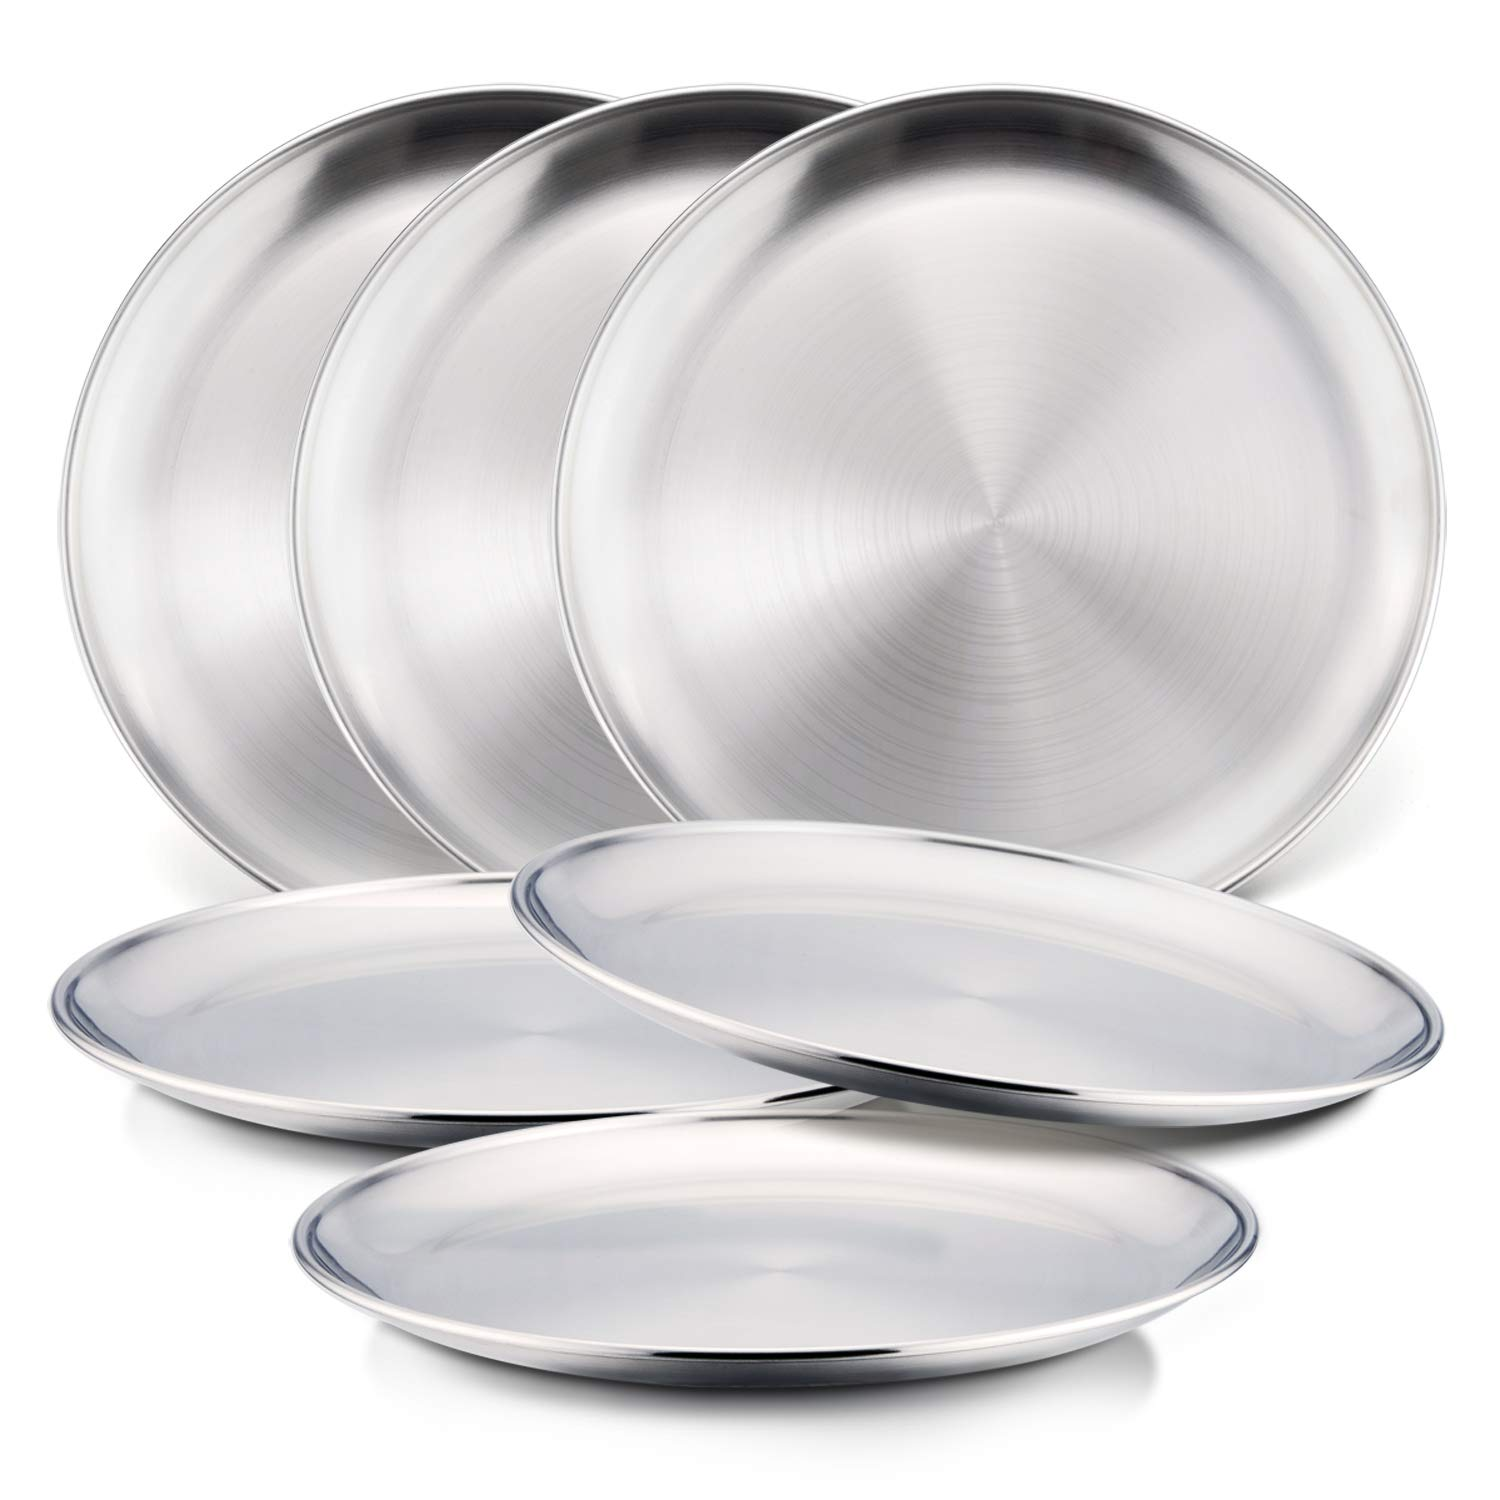 6-Piece 18/8 Stainless Steel Plates, HaWare Metal 304 Dinner Dishes for Kids Toddlers Children, 8 Inch Feeding Serving Camping Plates, Eco Friendly, BPA-Free and Dishwasher Safe